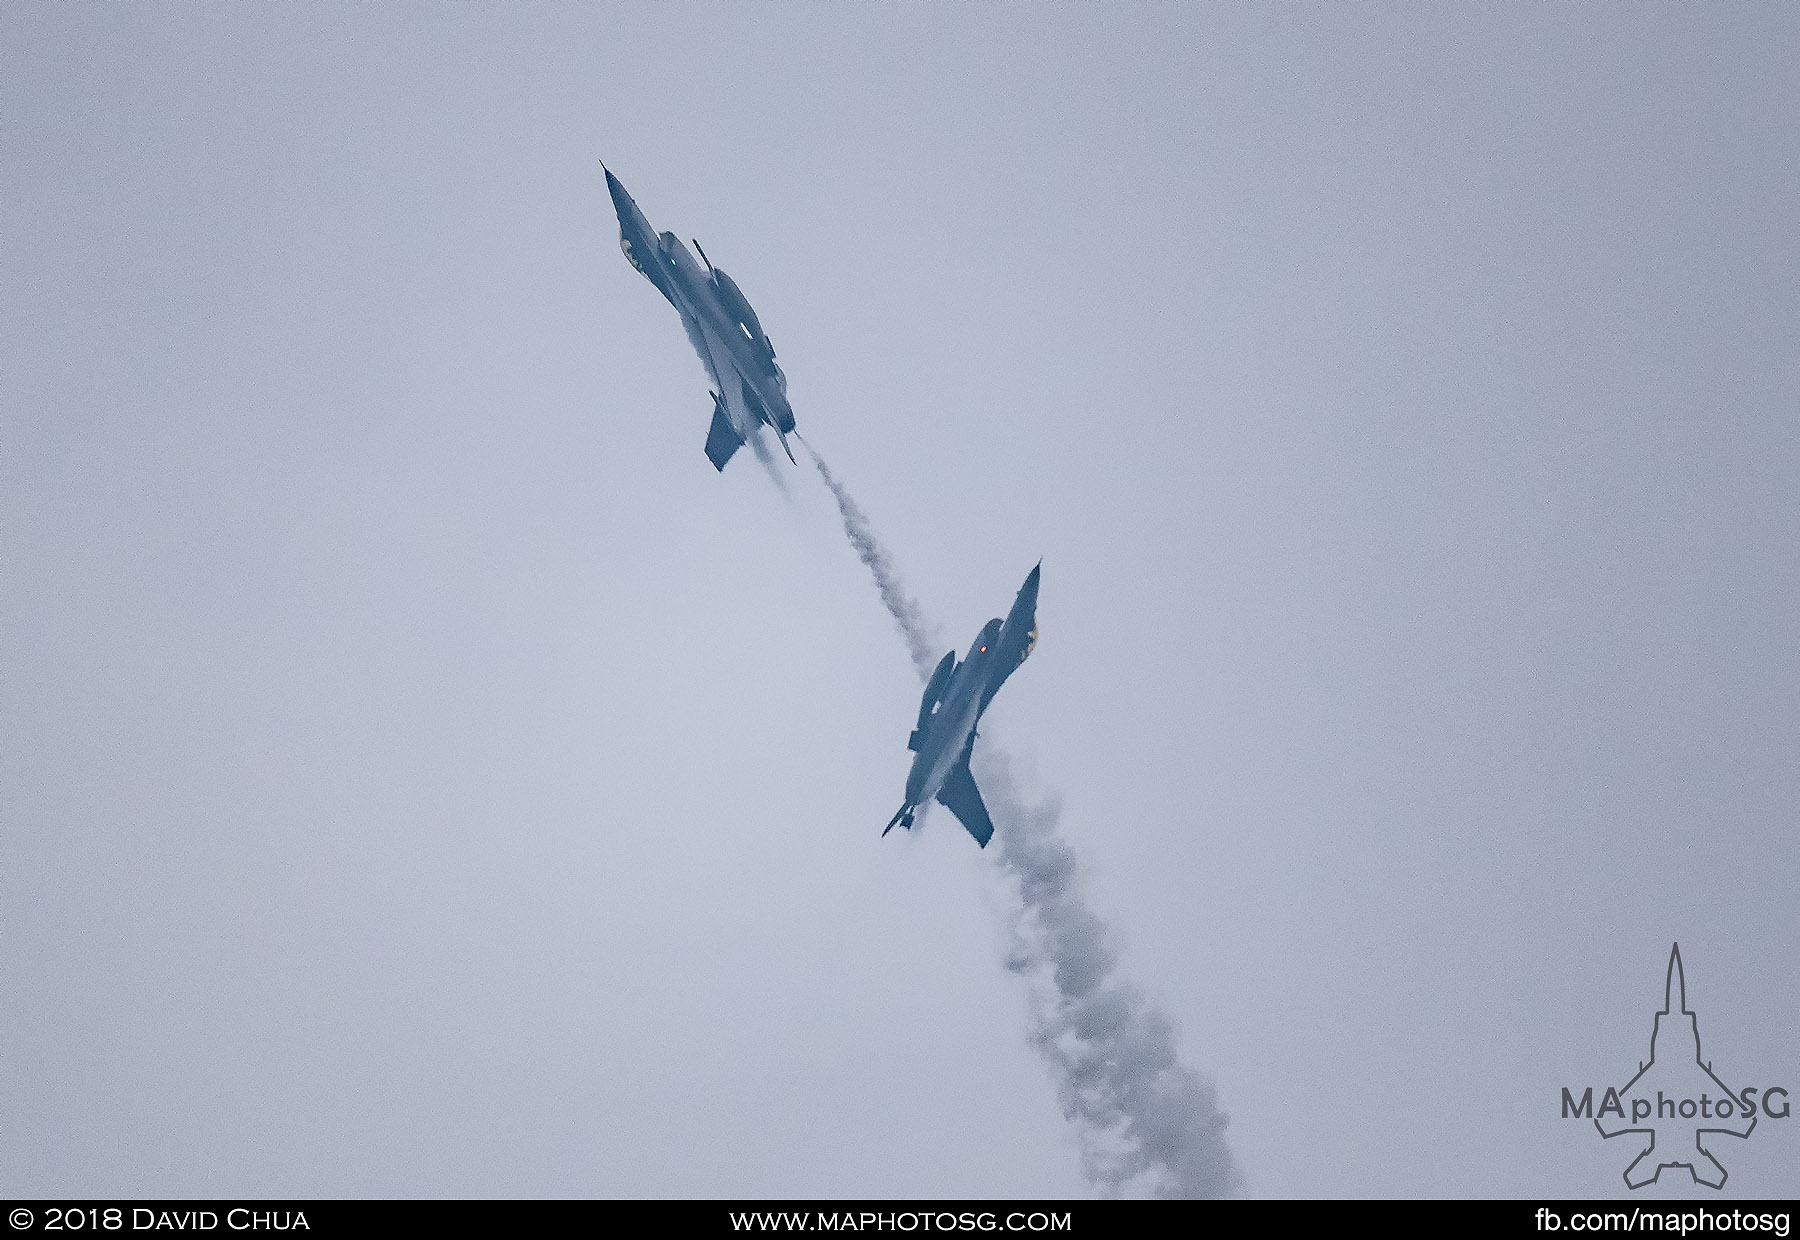 30. Two RSAF F-16C Vipers draws a heart in the sky with white smoke.